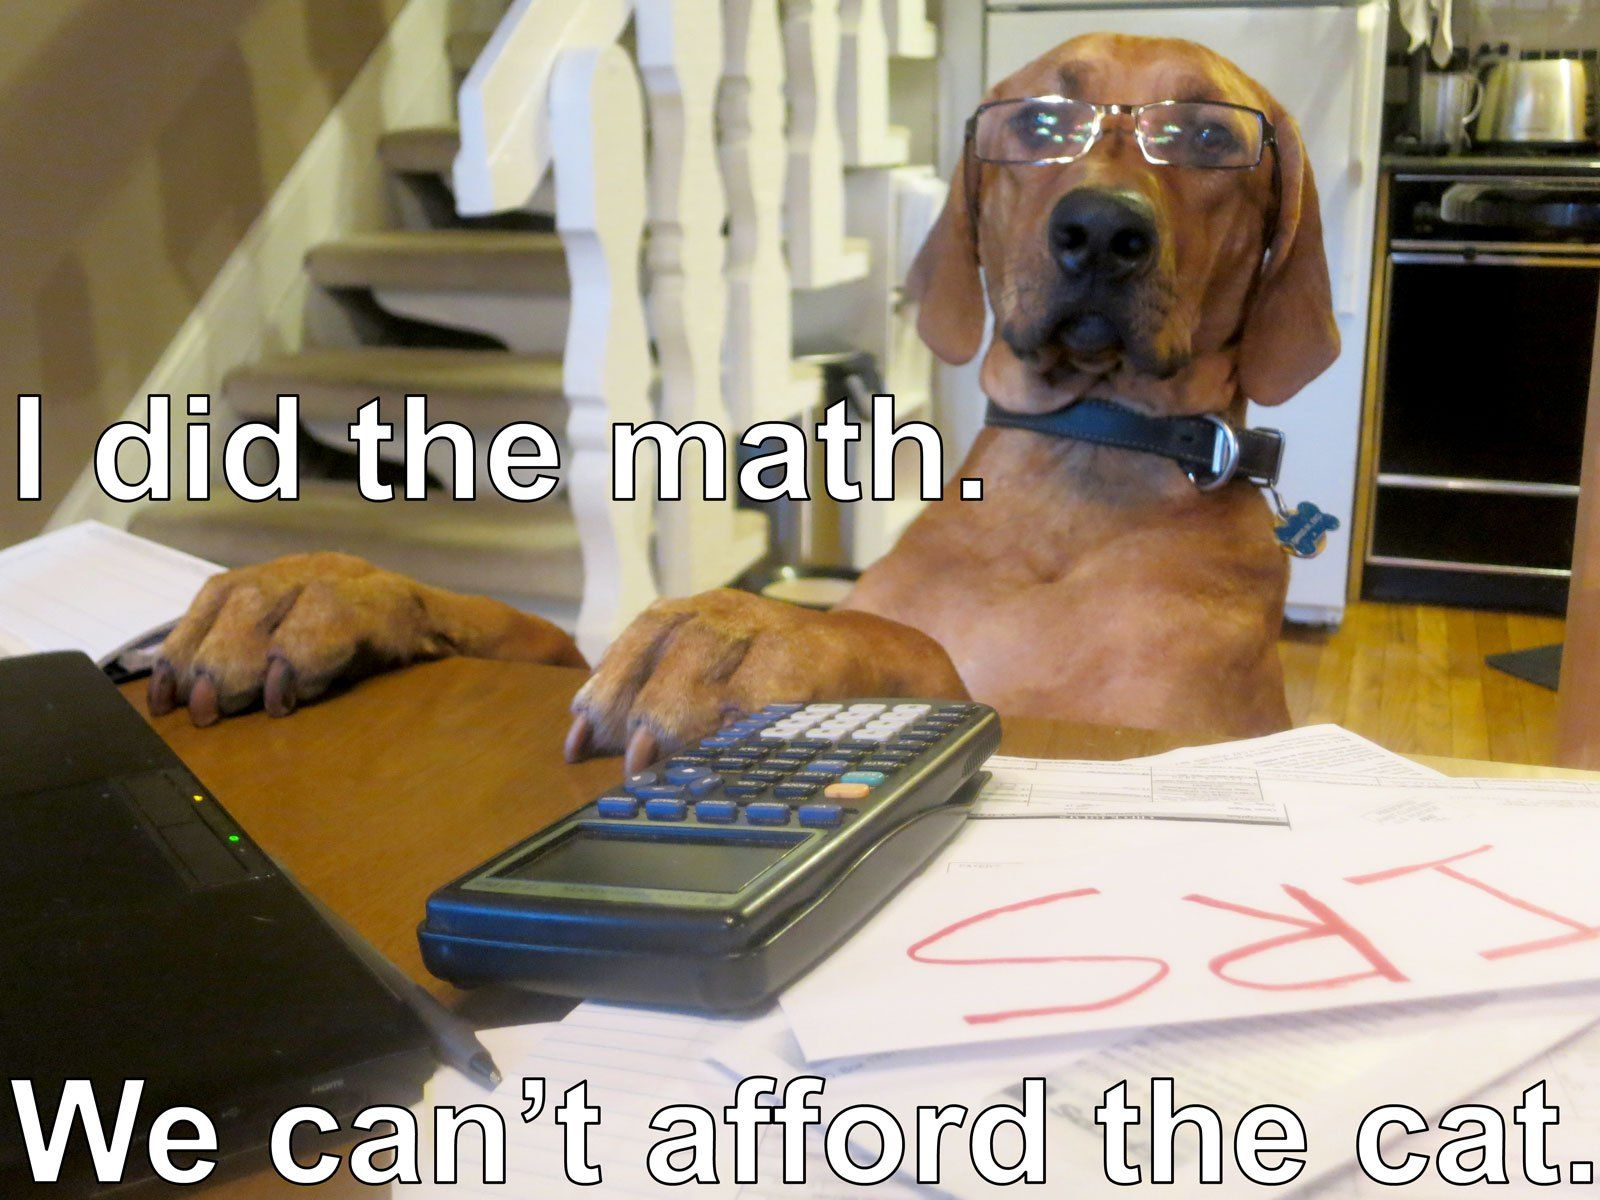 Cute Math Pictures With Dogs